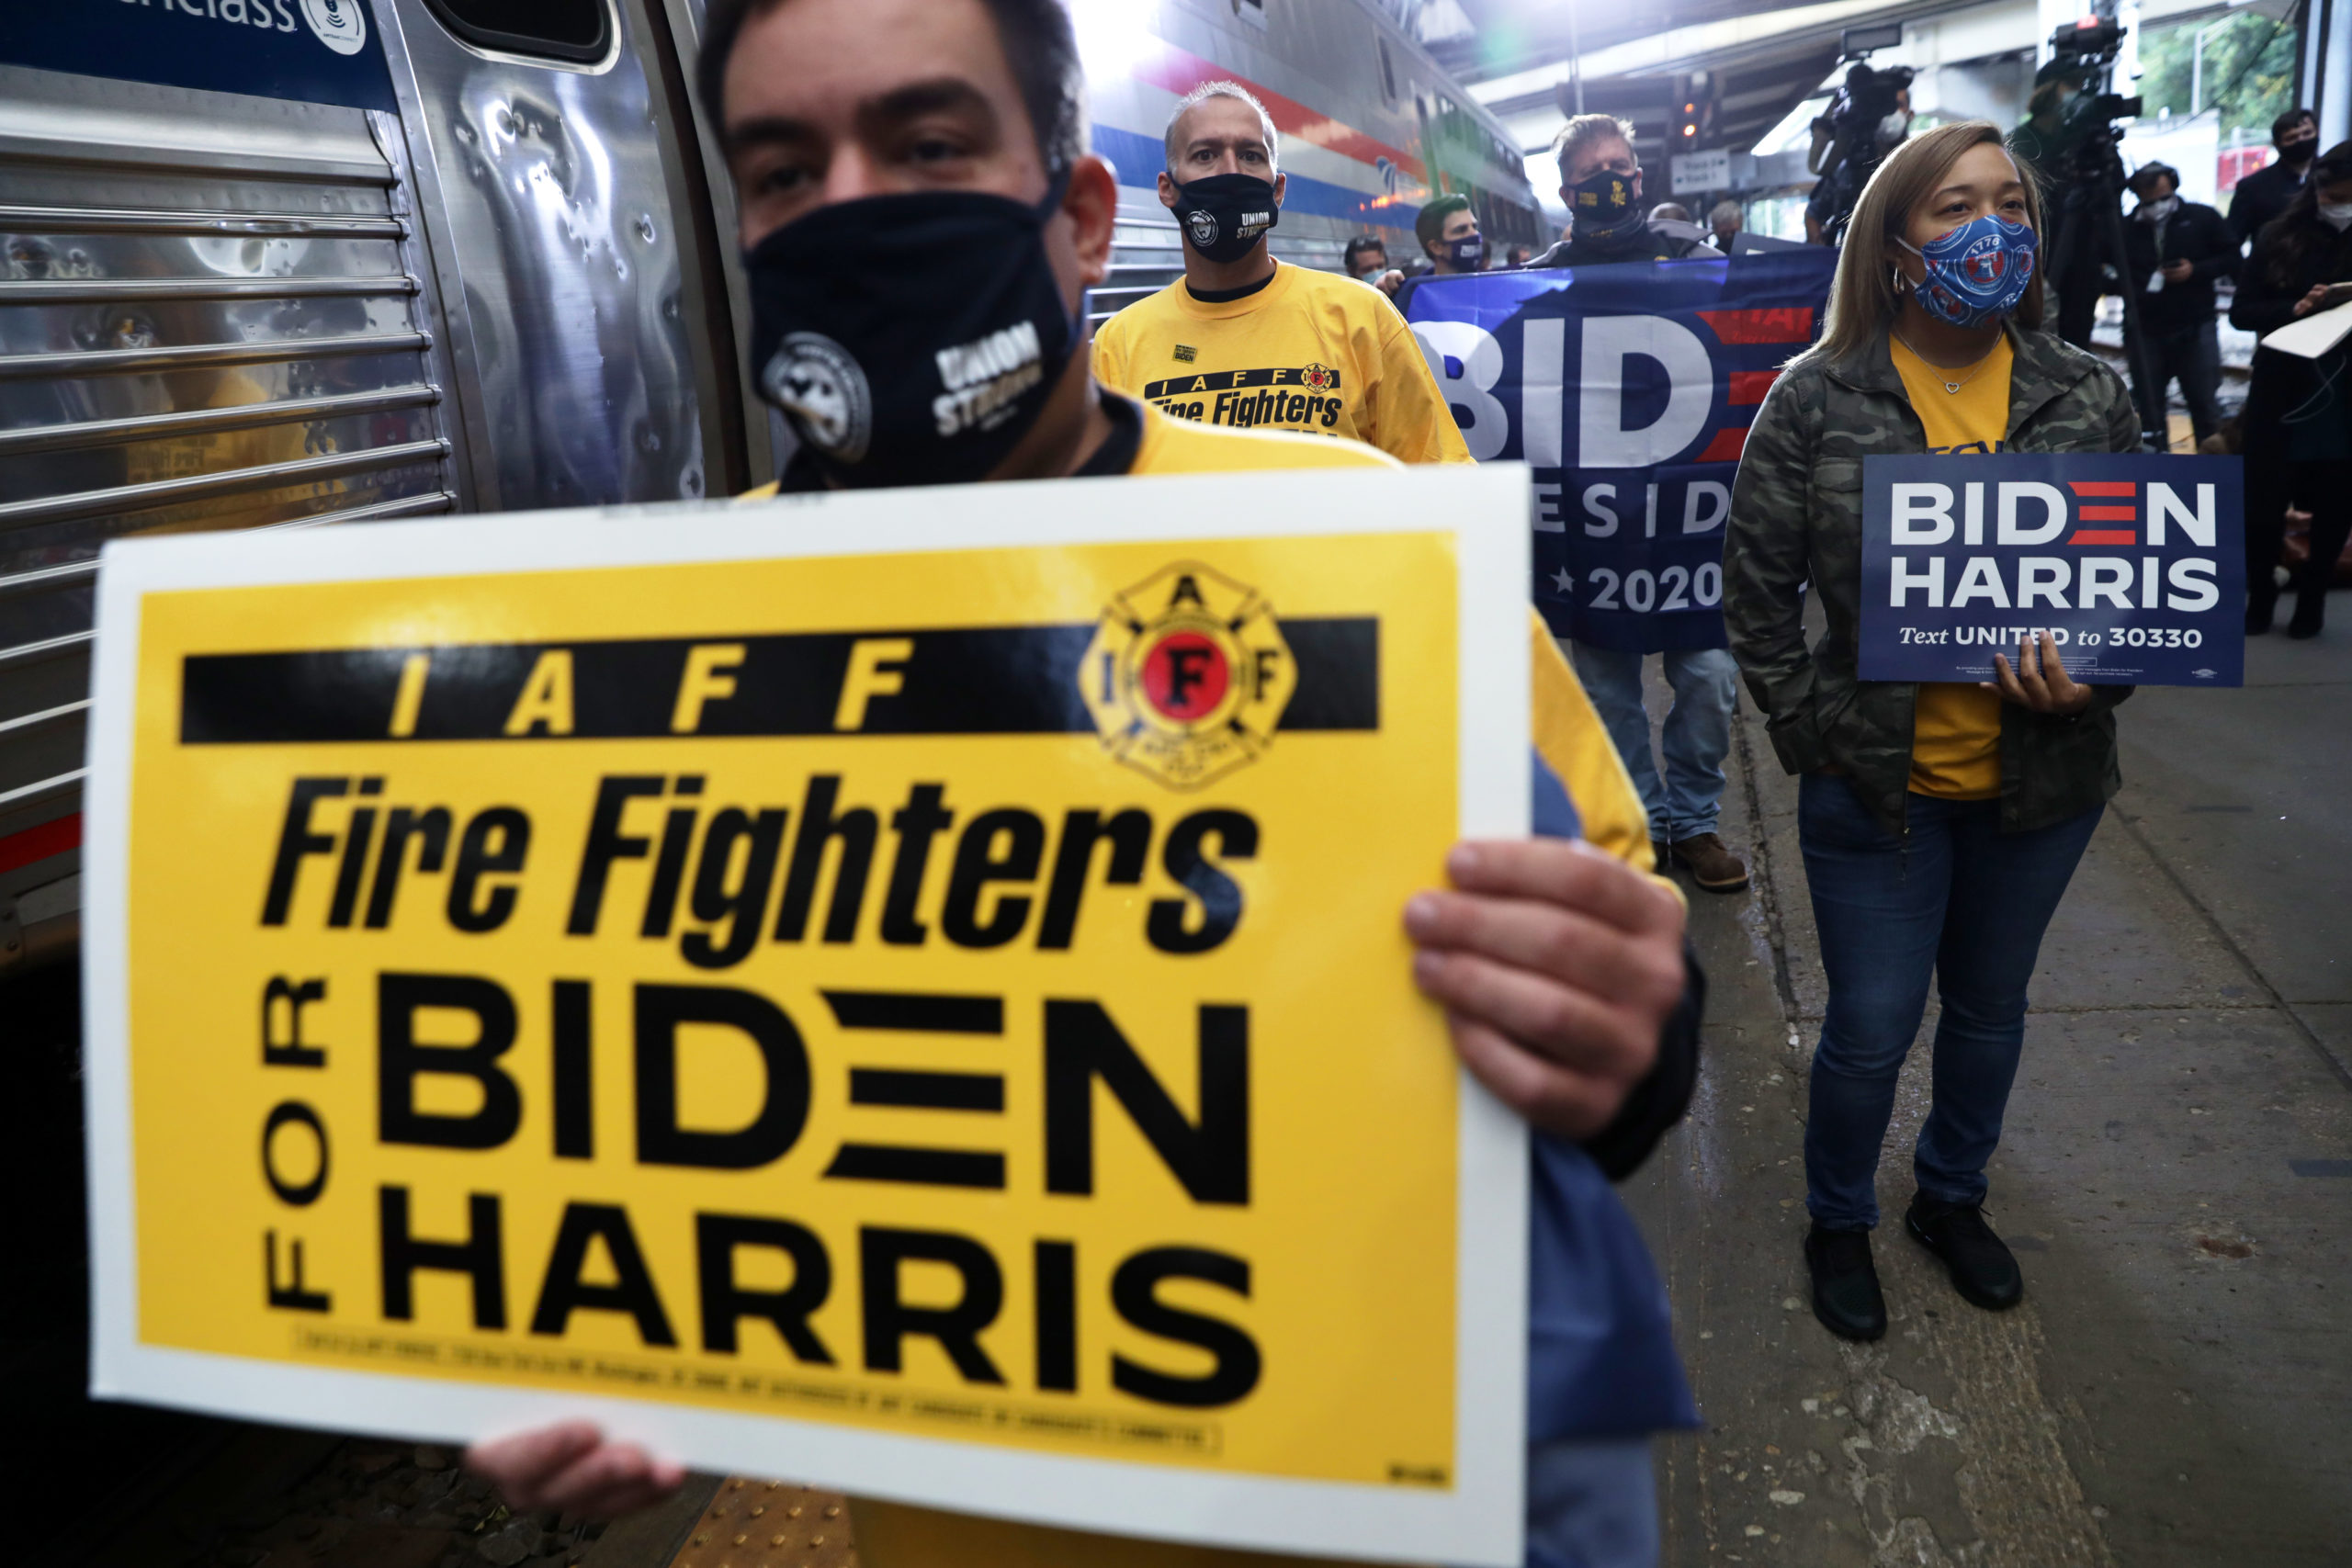 Supporters hold signs during a campaign stop of Pittsburgh Union Station on Sept. 30. (Alex Wong/Getty Images)